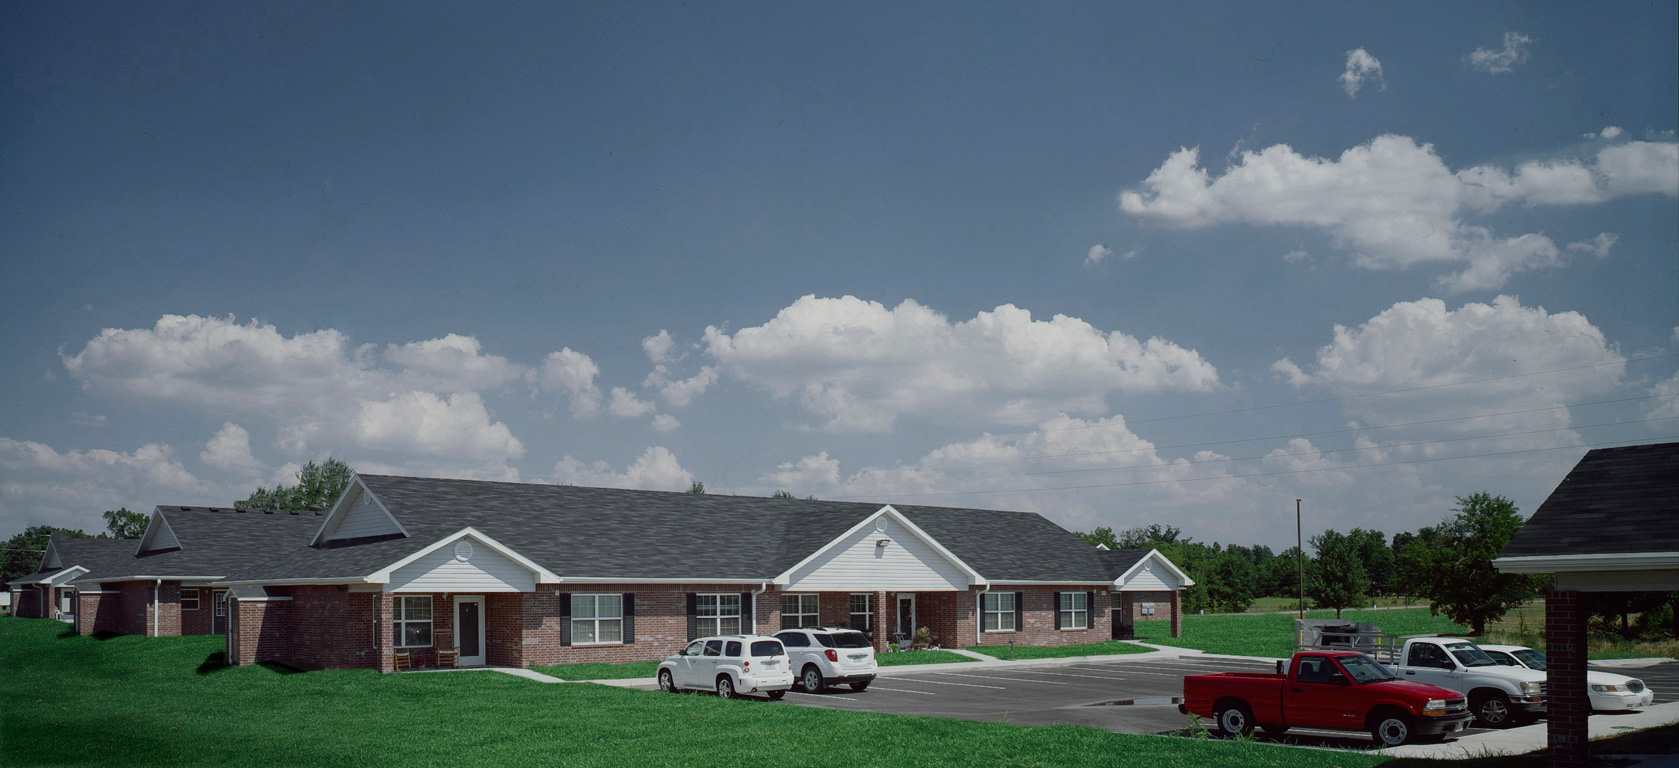 Lebanon Senior Housing Phase IILebanon, Missouri